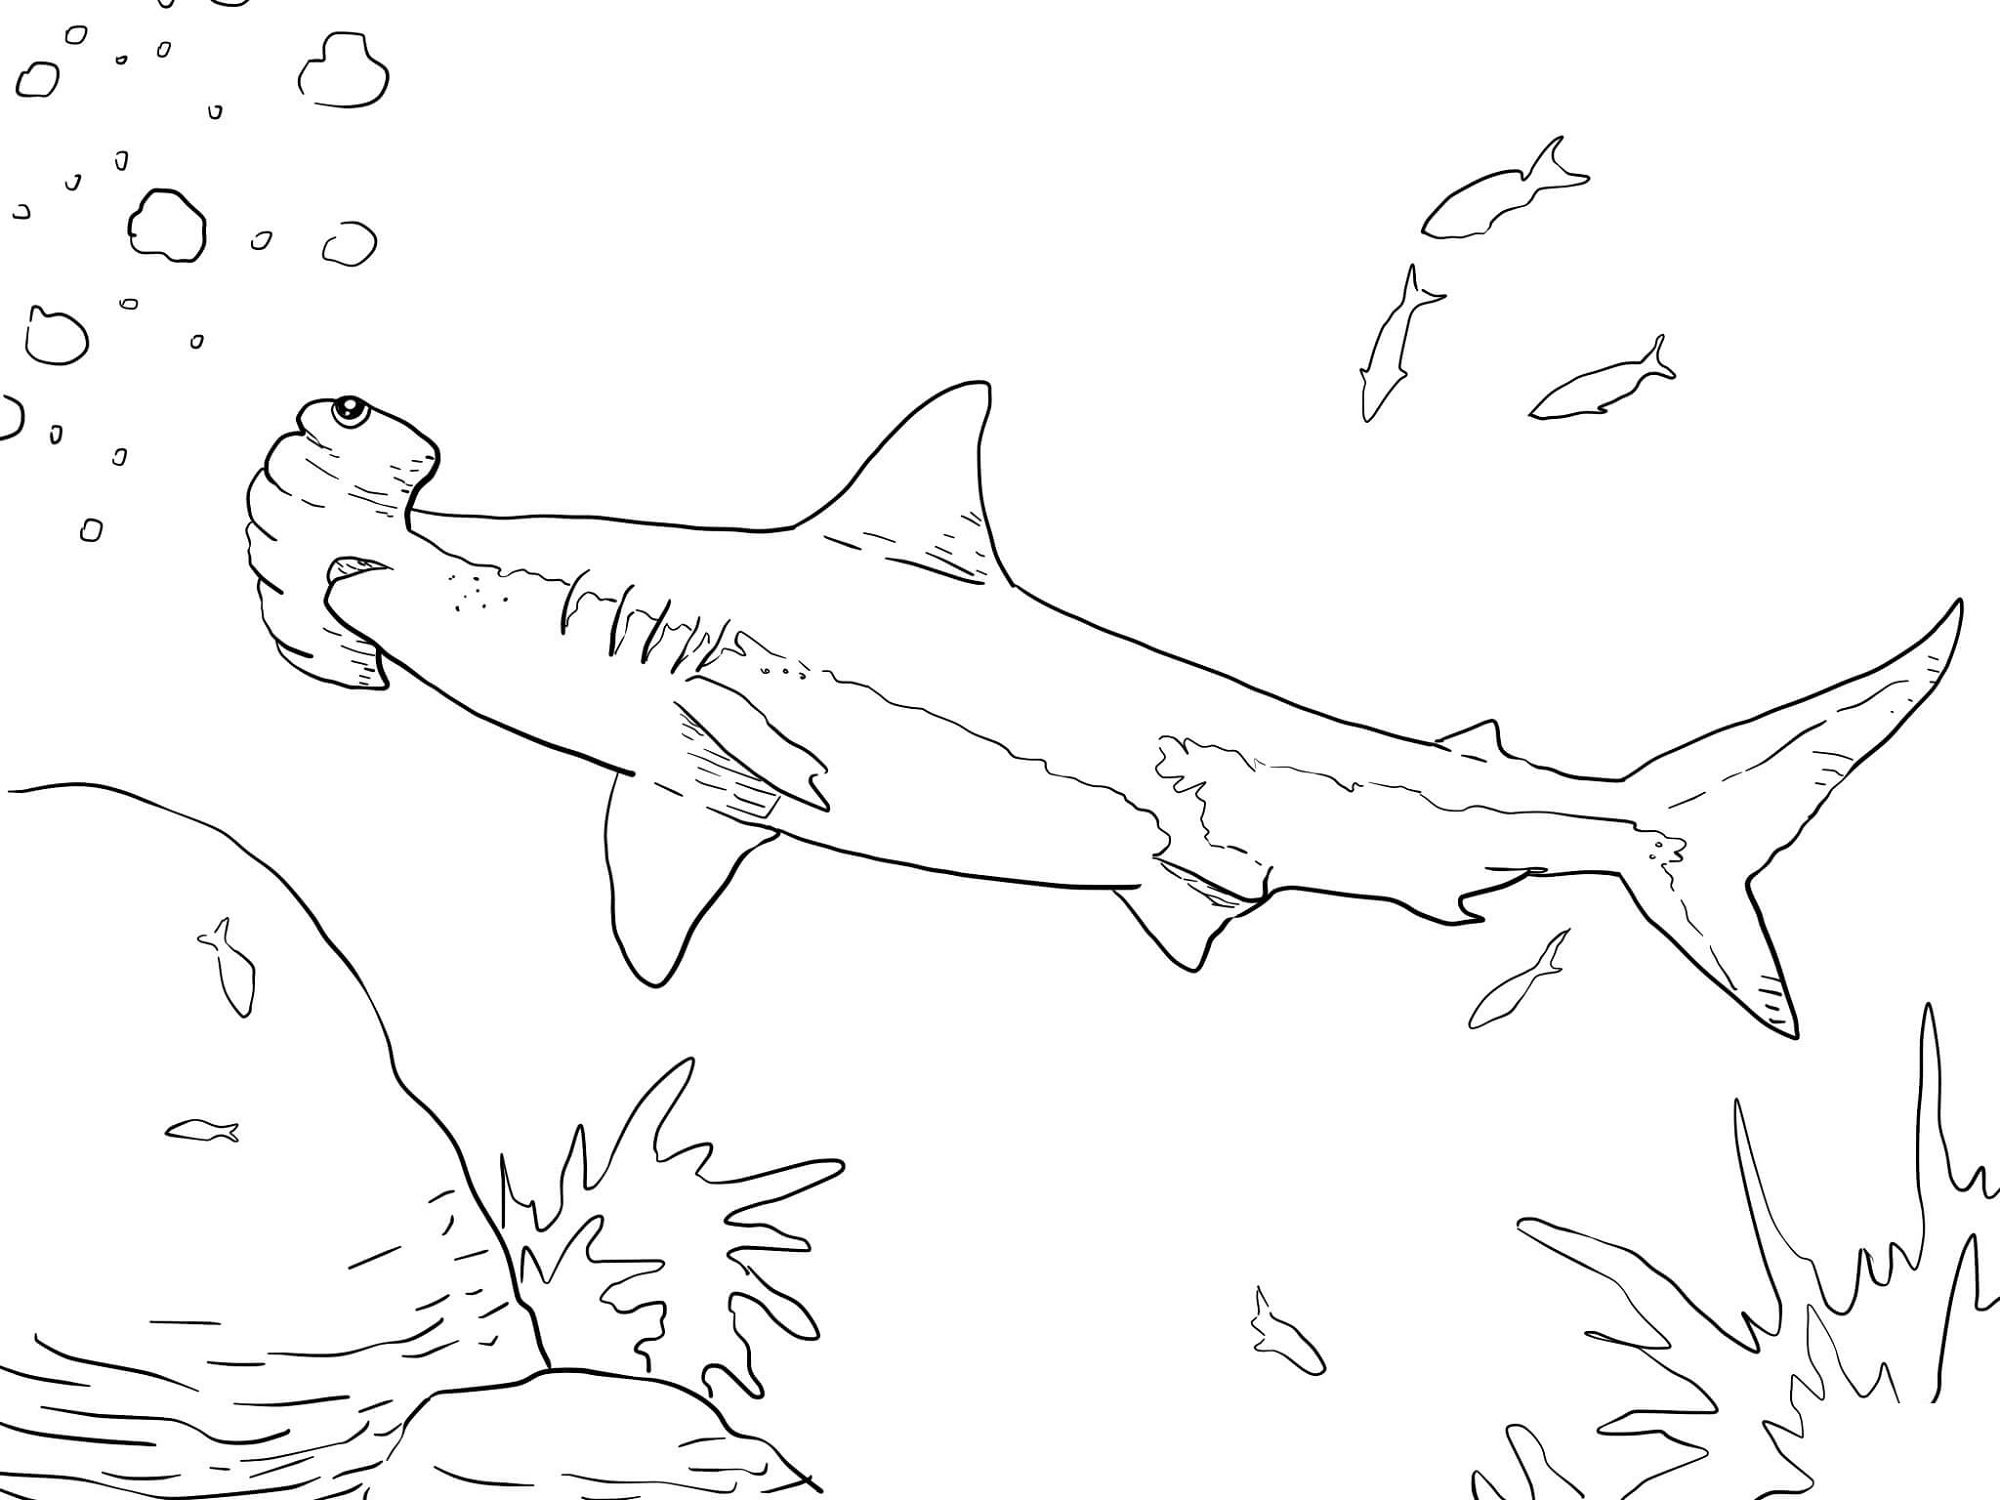 Shark Color Page for Fish Lovers | Kiddo Shelter | Coloring Pages ...